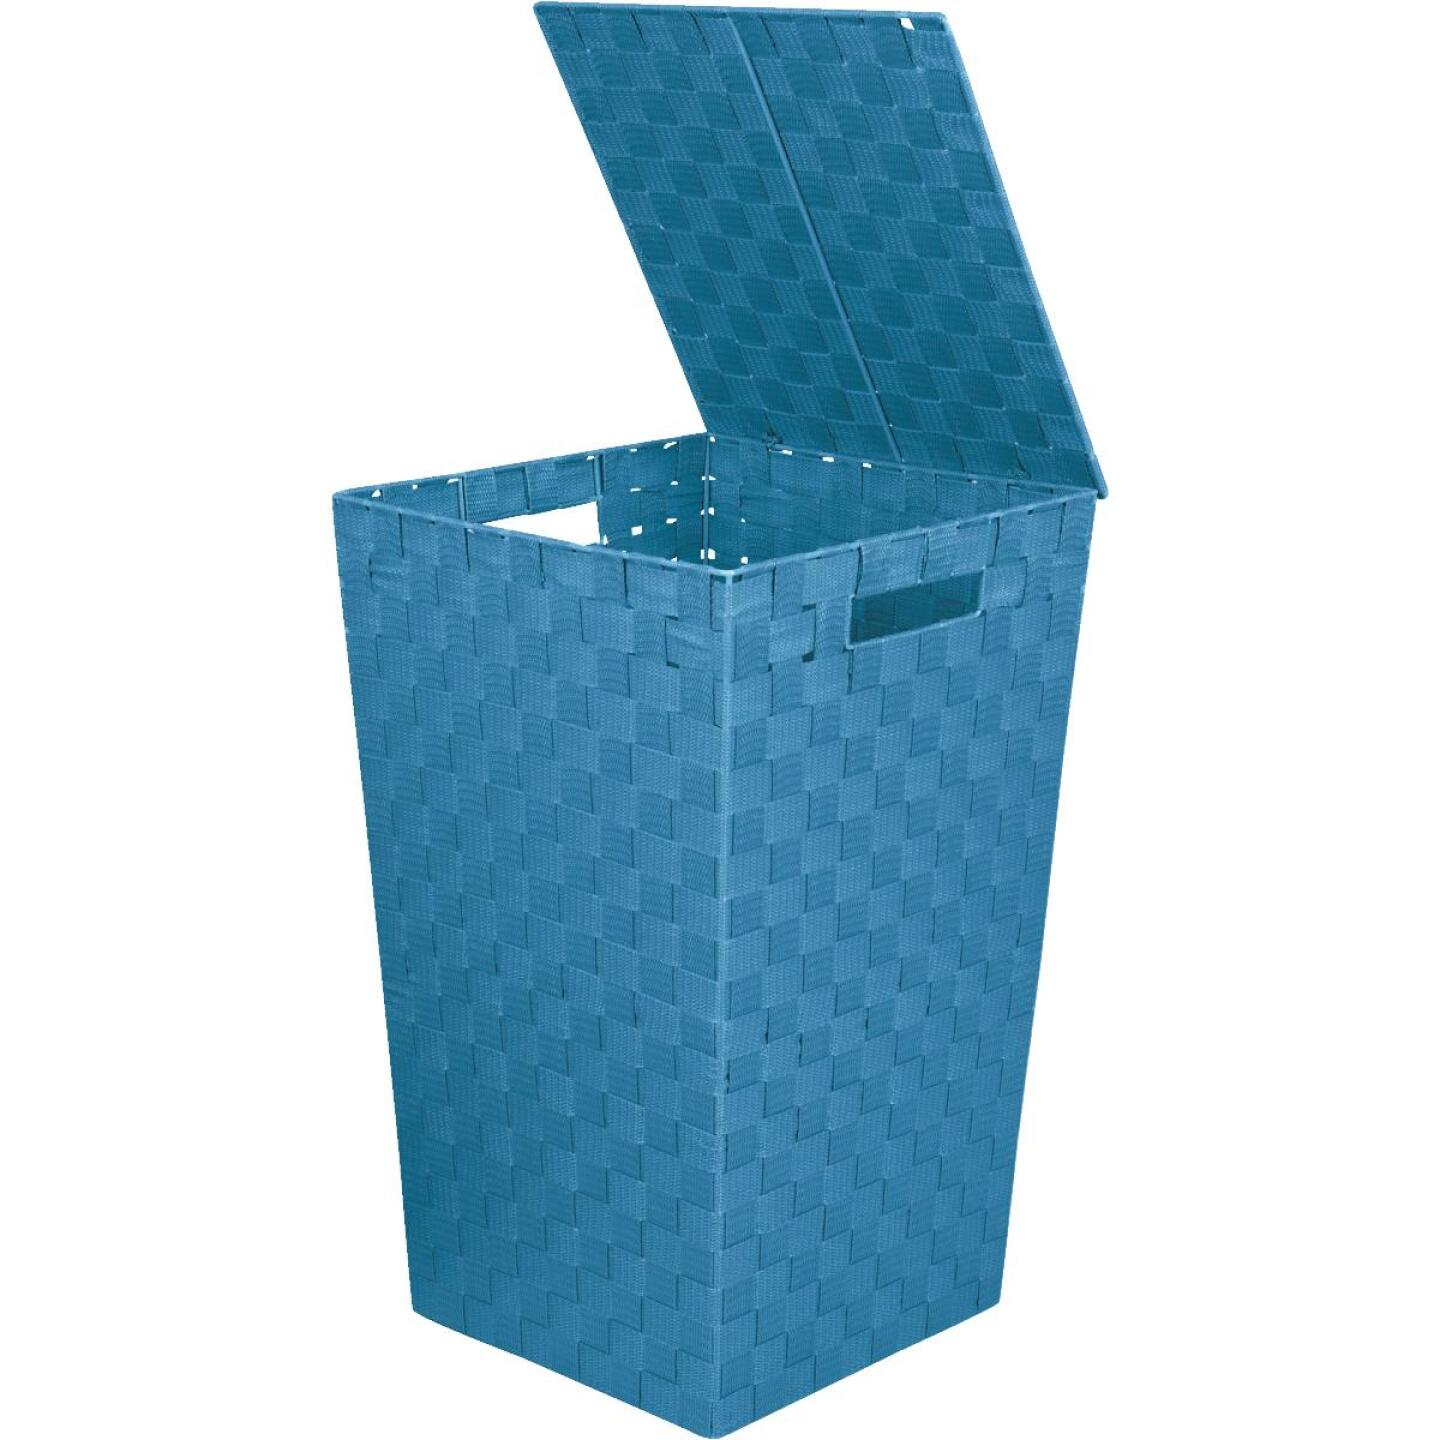 Home Impressions 13 In. x 20.5 In. H. Woven Laundry Hamper, Blue Image 1